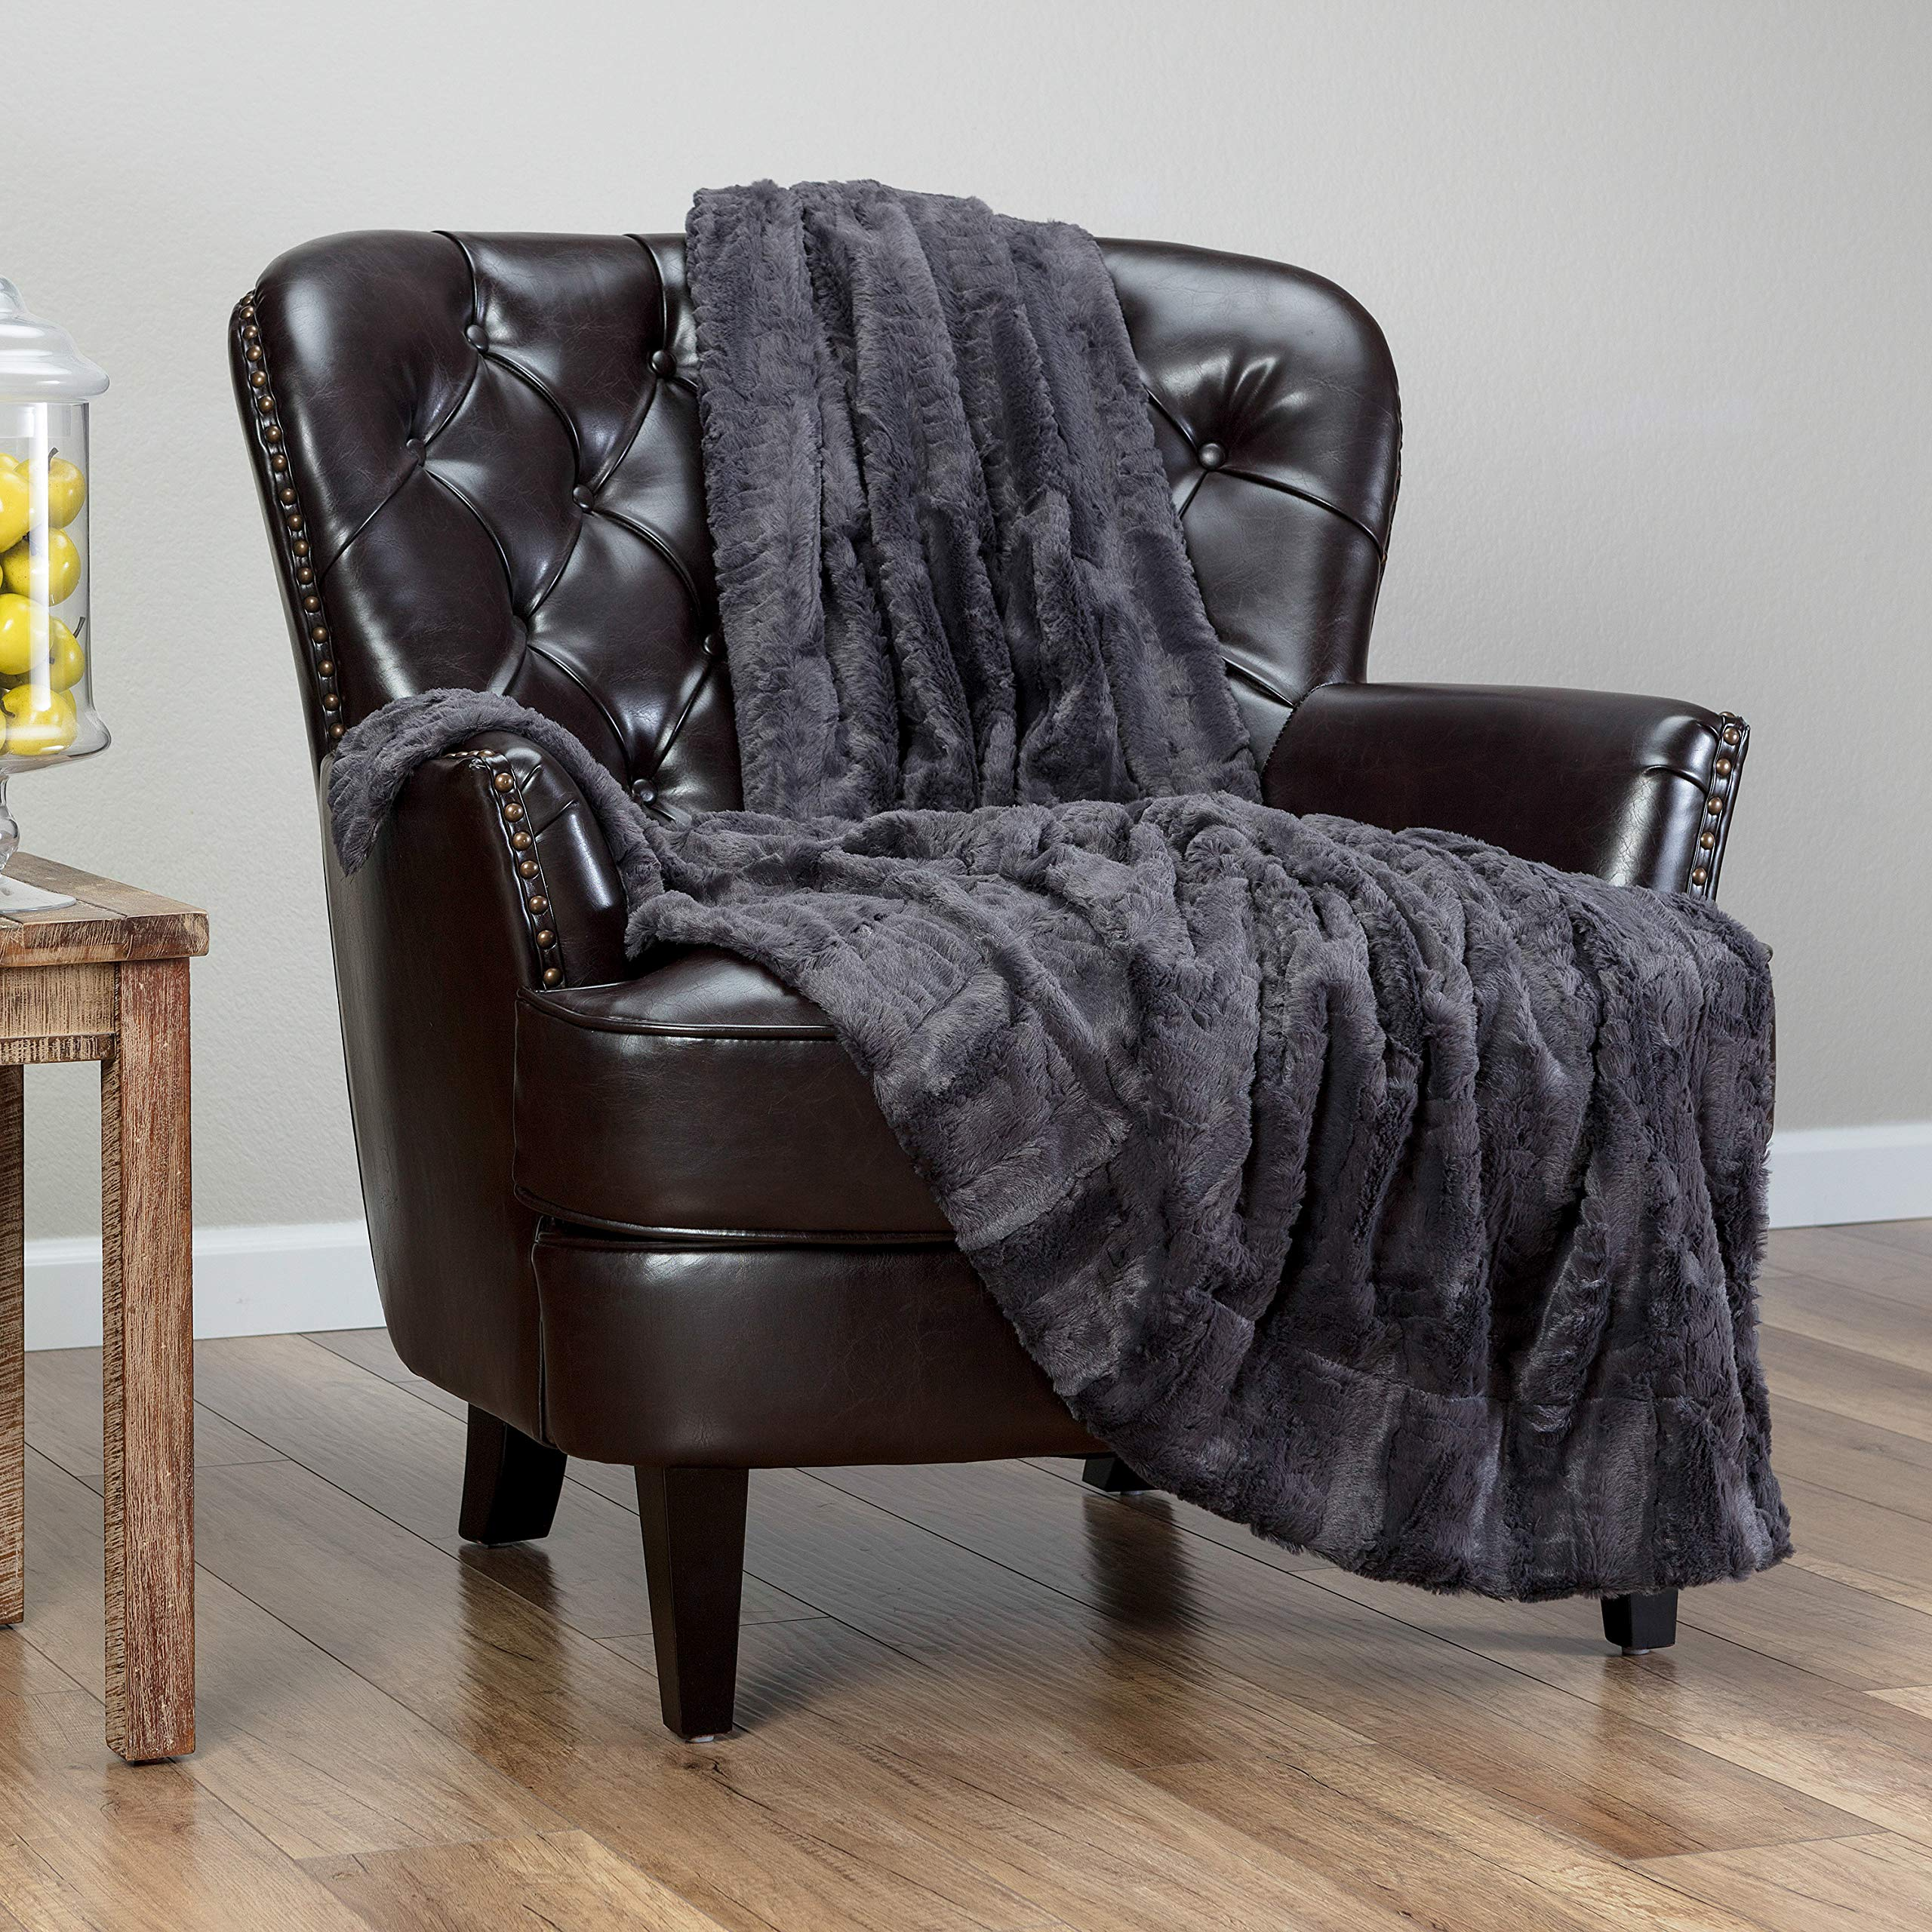 Chanasya Fuzzy Faux Feather Fur Throw Blanket - Reversible Soft Elegant Ruffle Front and Micro Mink Back Chick Blanket for Bed Couch Room (50x65 Inches) Charcoal Gray